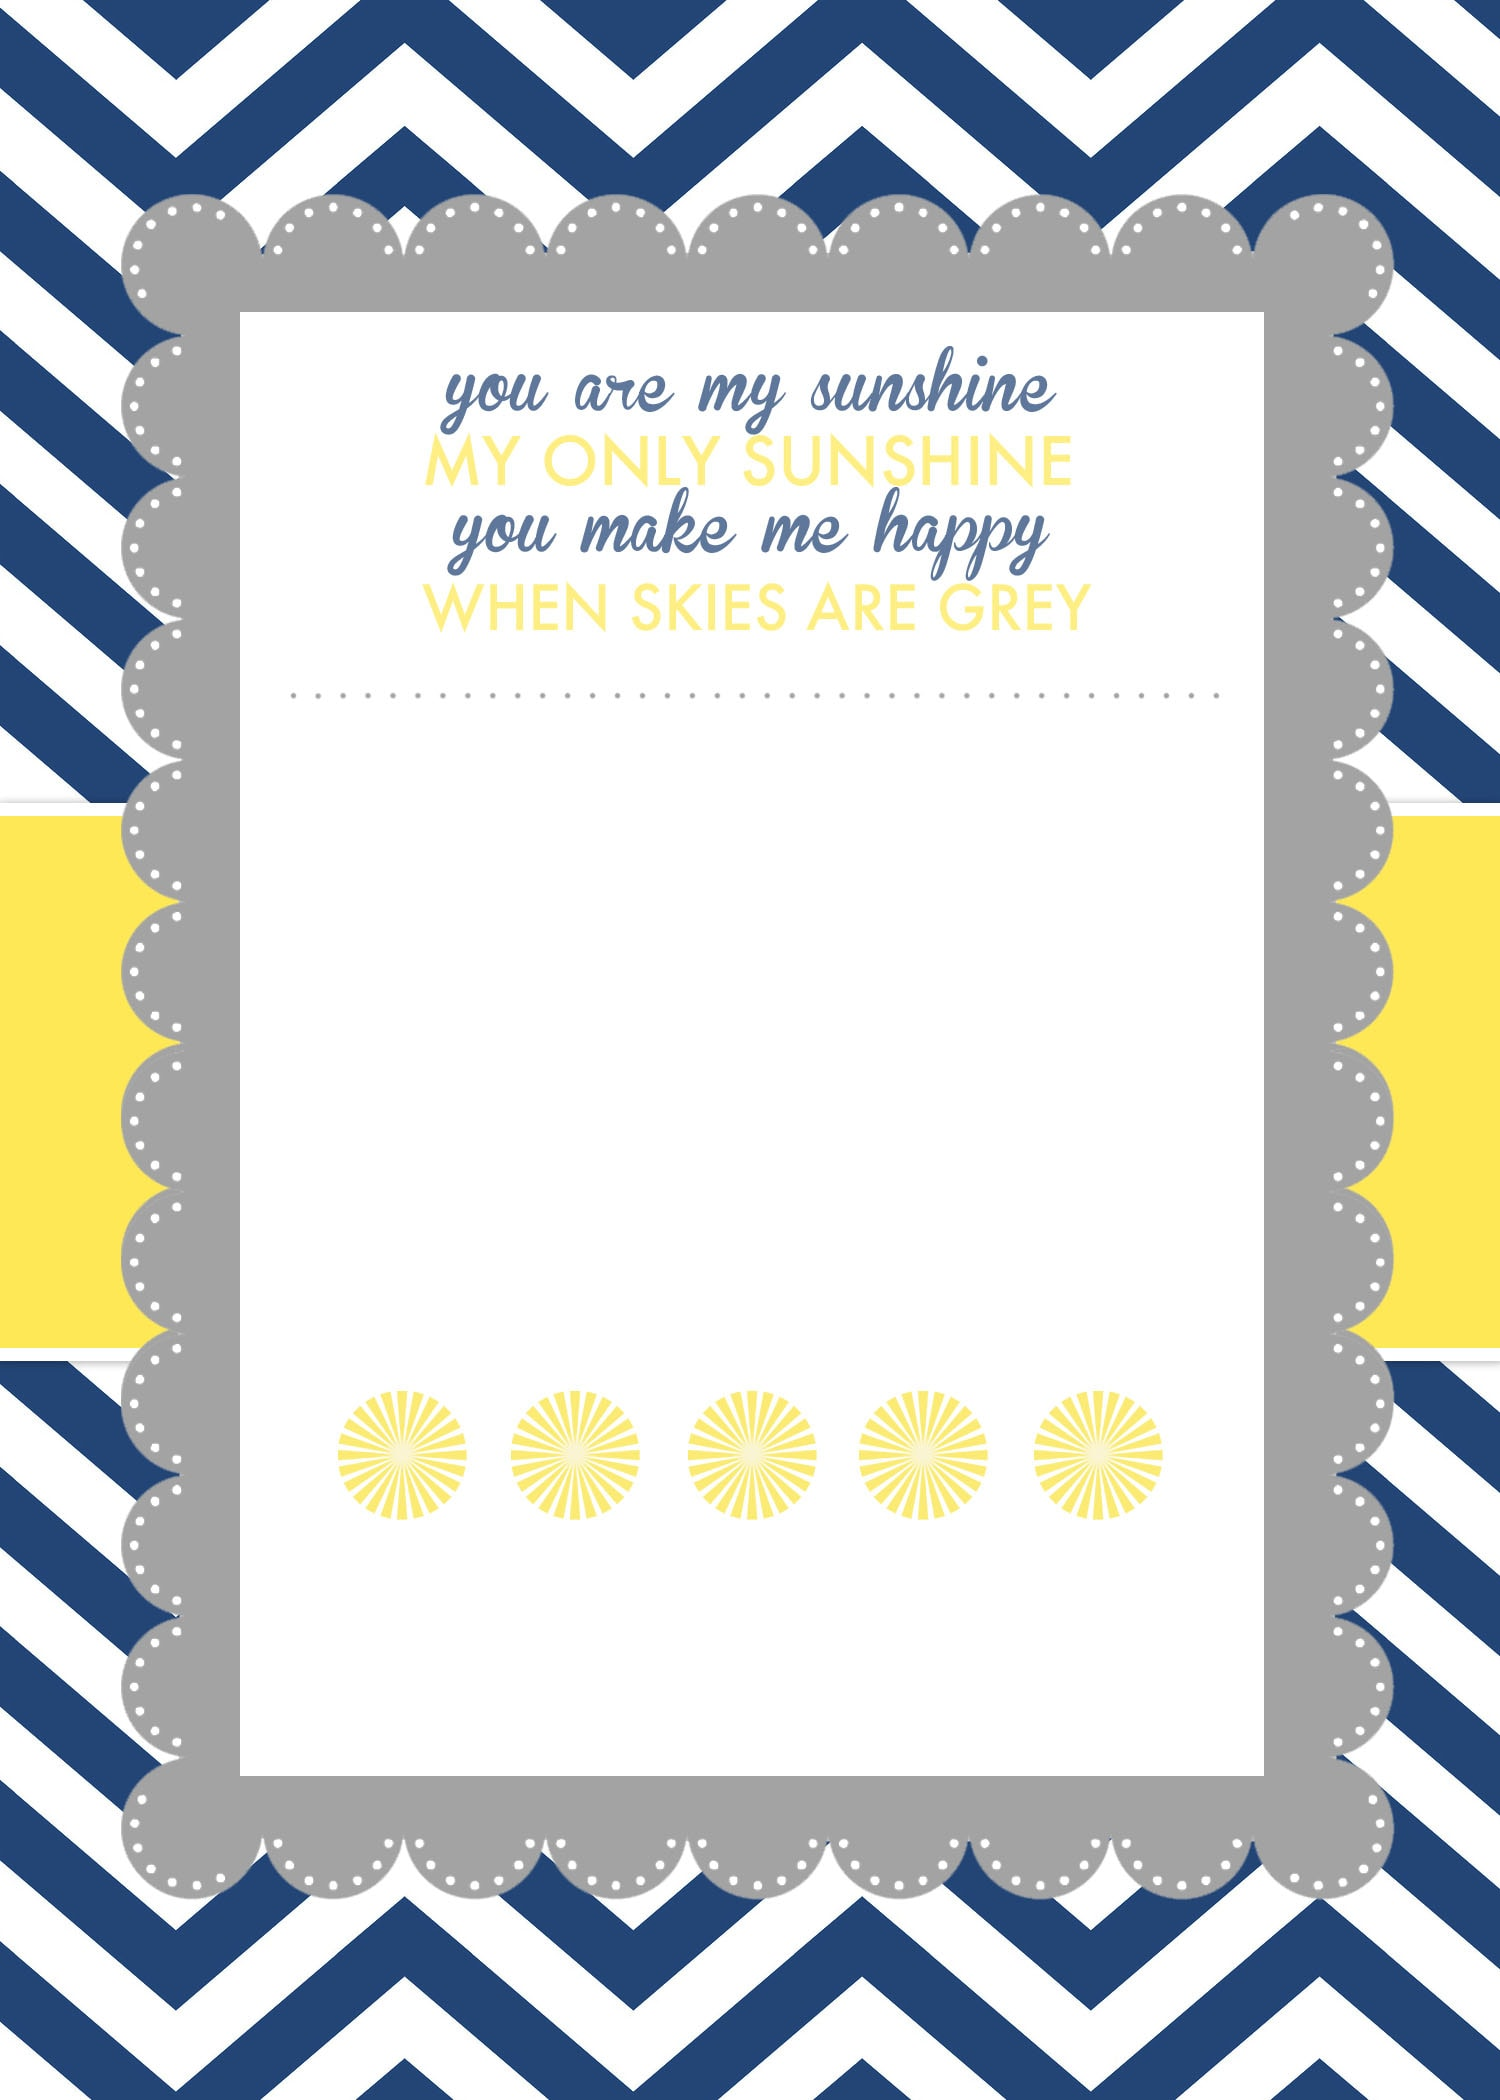 Blank Baby Shower Invitation Templates - Print at home baby shower invitation templates